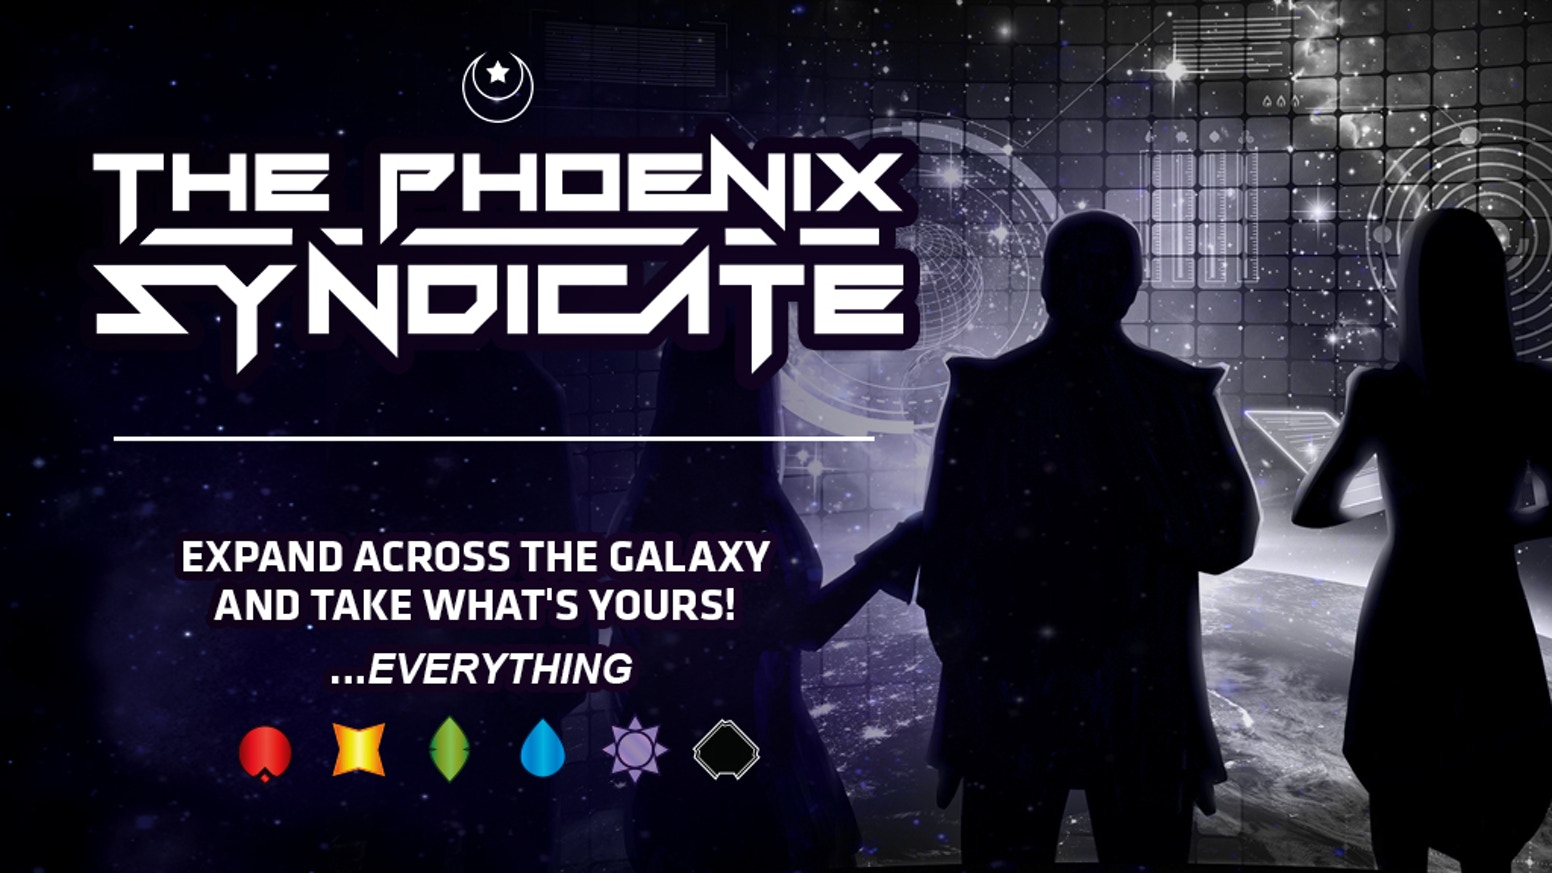 Spread a shadowy network of agents across the galaxy, secure trade routes, and infiltrate guilds. Rise as the new Phoenix Syndicate! Shipping in late September, pre-orders are now available!